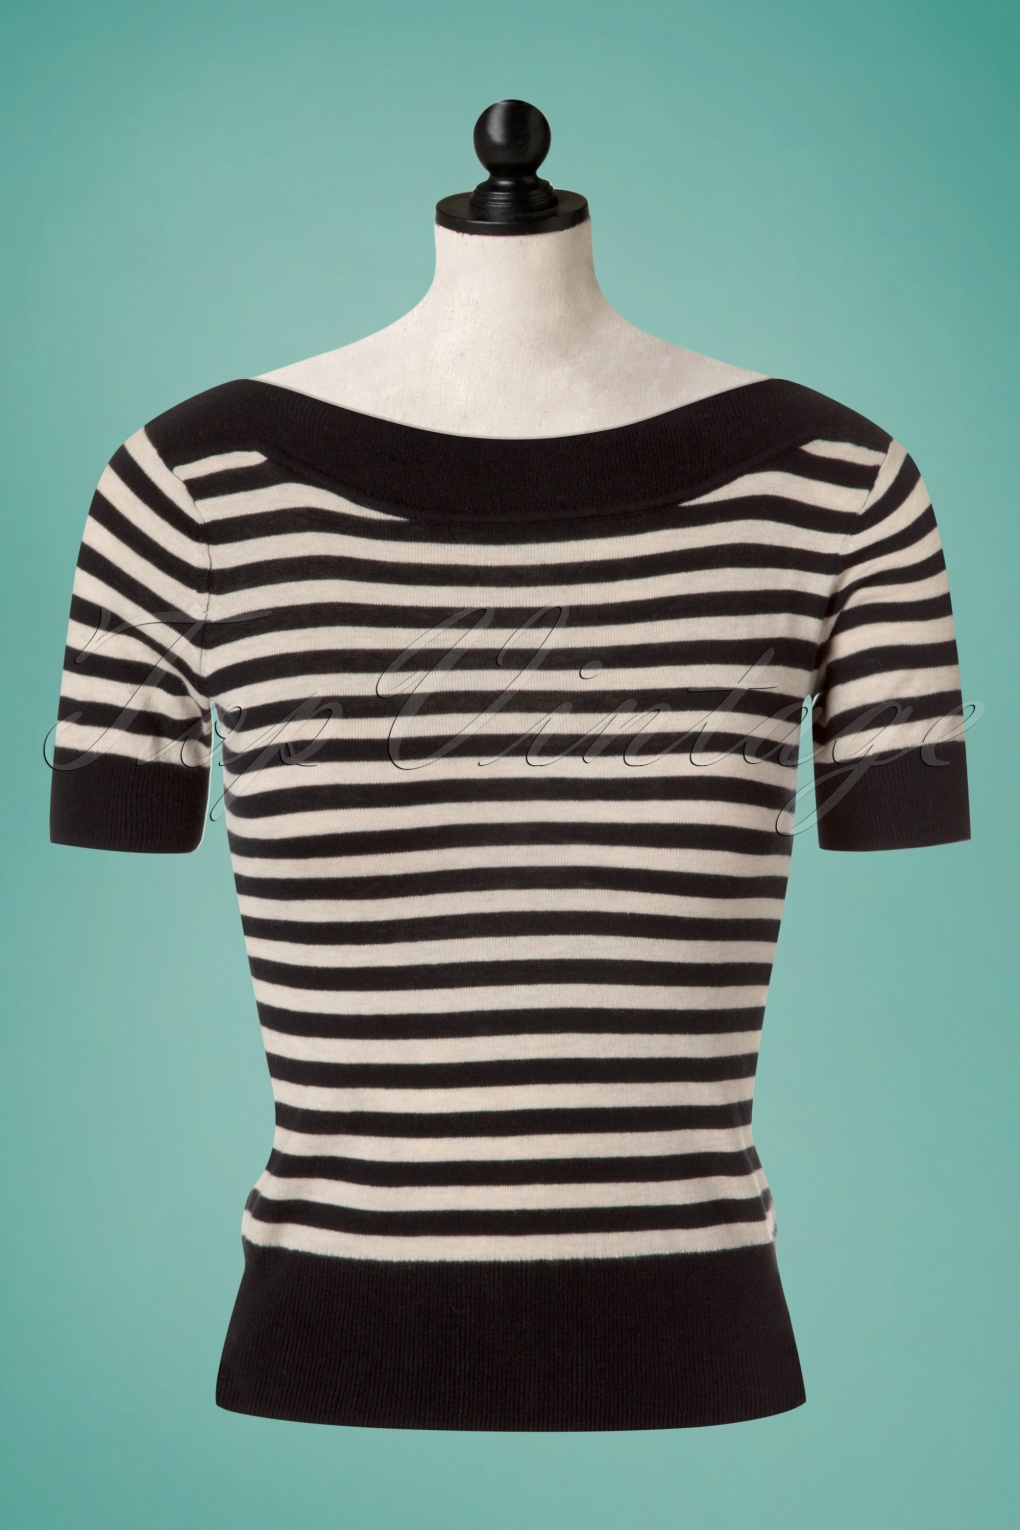 1940s Blouses, Shirts and Tops Fashion History 50s Audrey Ekko Stripes Top in Black Silk £60.76 AT vintagedancer.com